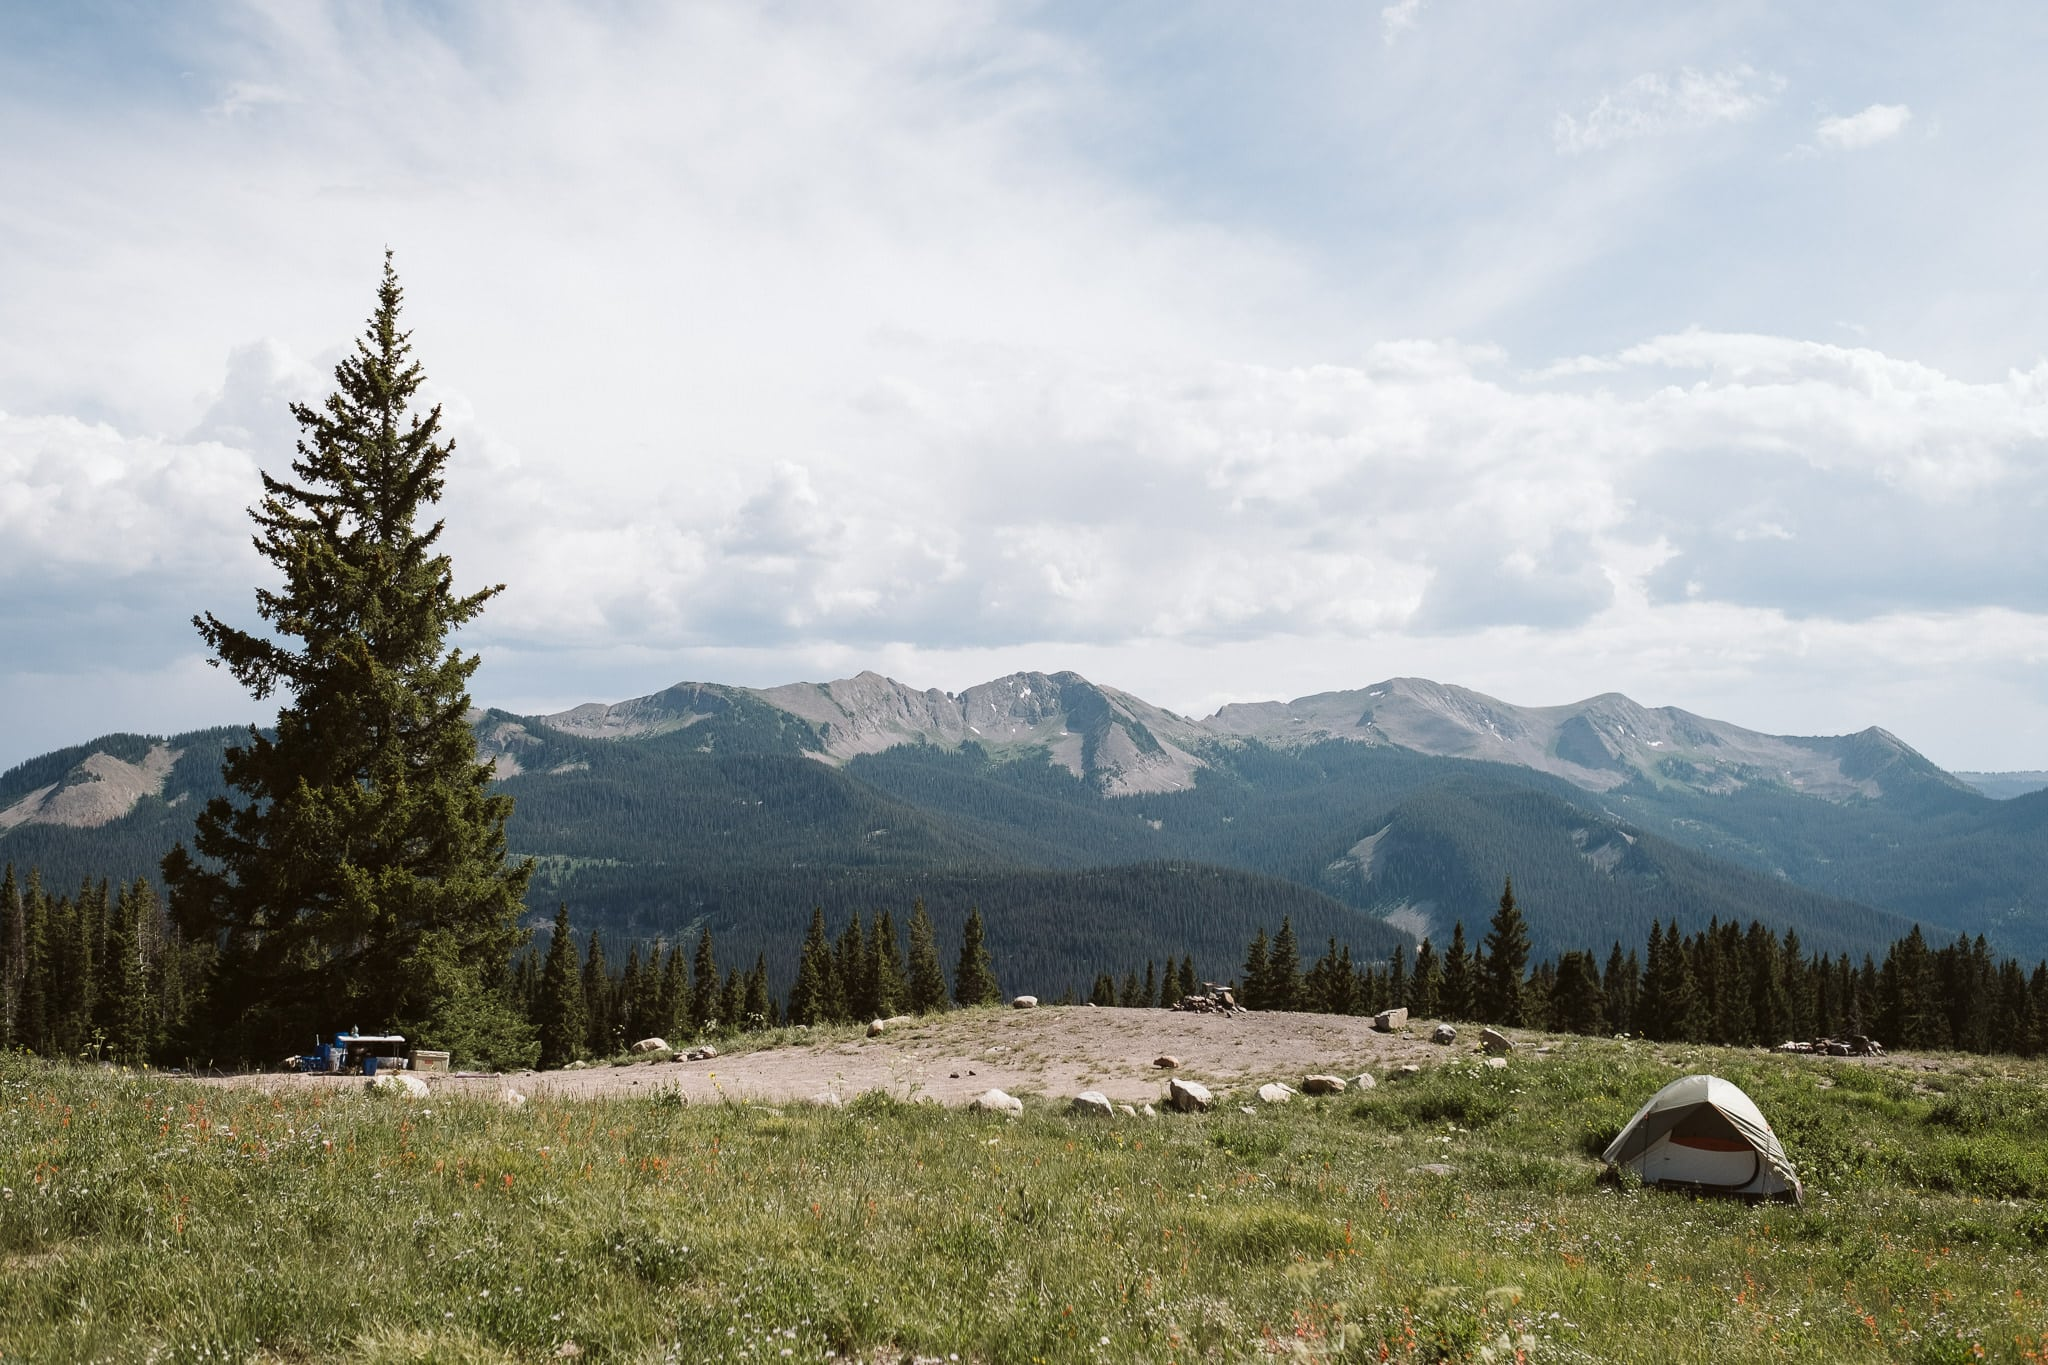 Camping elopement sites in Crested Butte